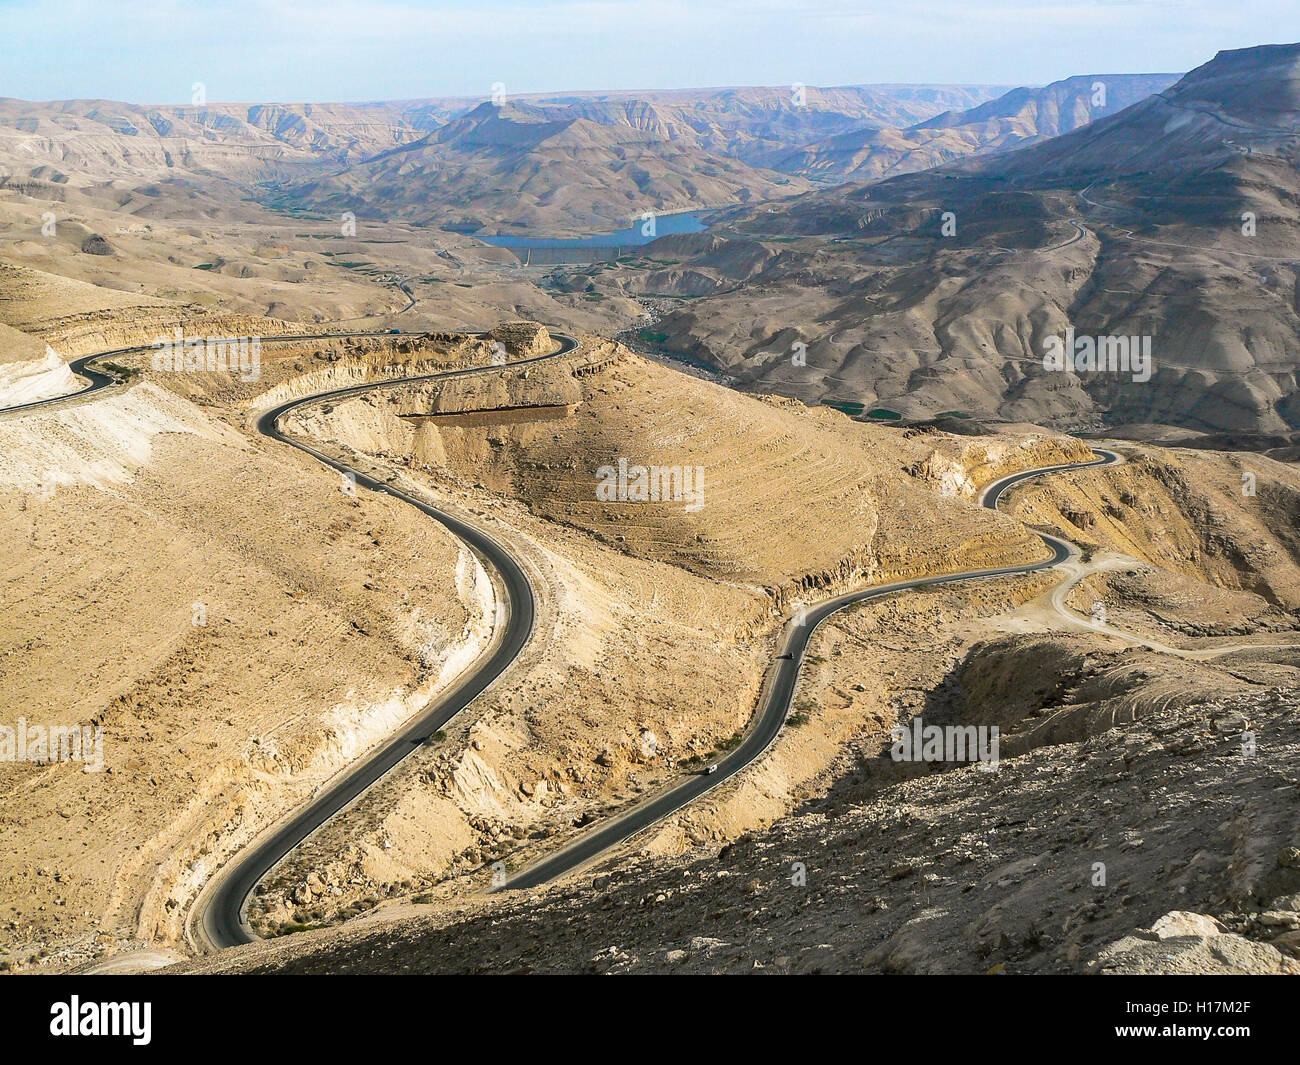 Wadi Mujib, Kings Highway in Jordan - Stock Image